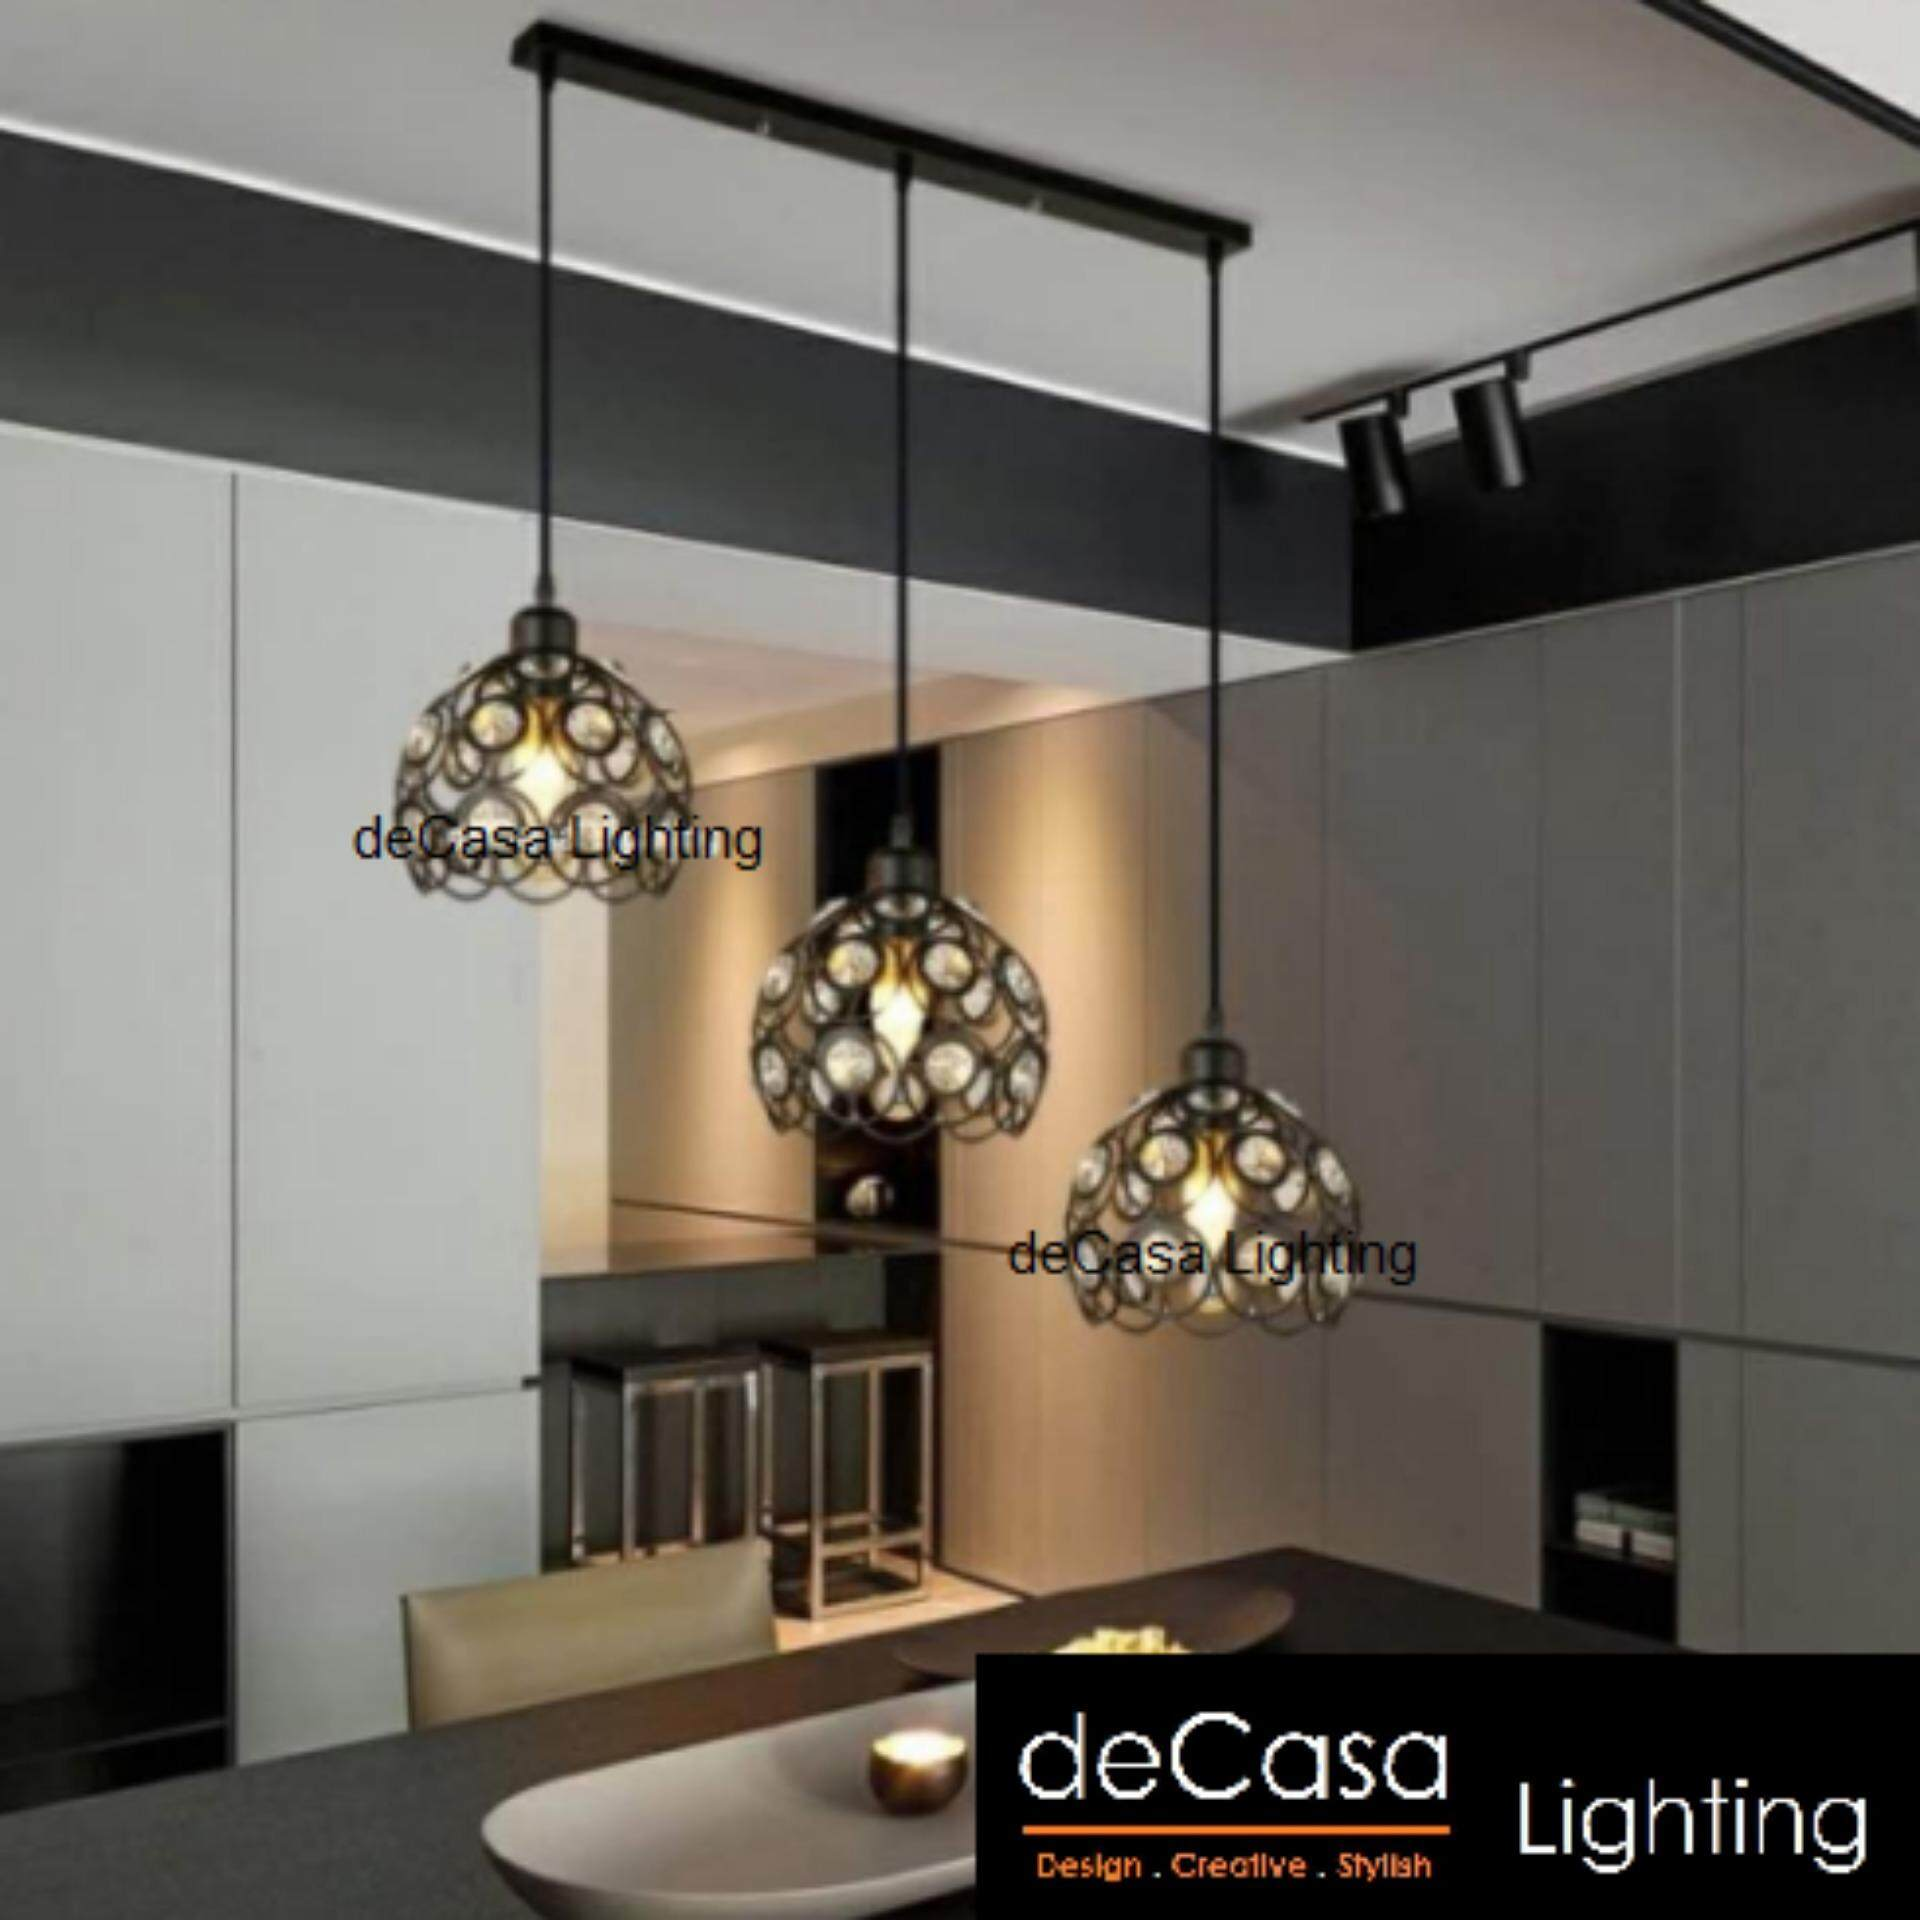 Set of 3 pendant light decasa lighting ceiling lights modern style crystal ceiling lamp black white lampshade long base hd 1303 200 3